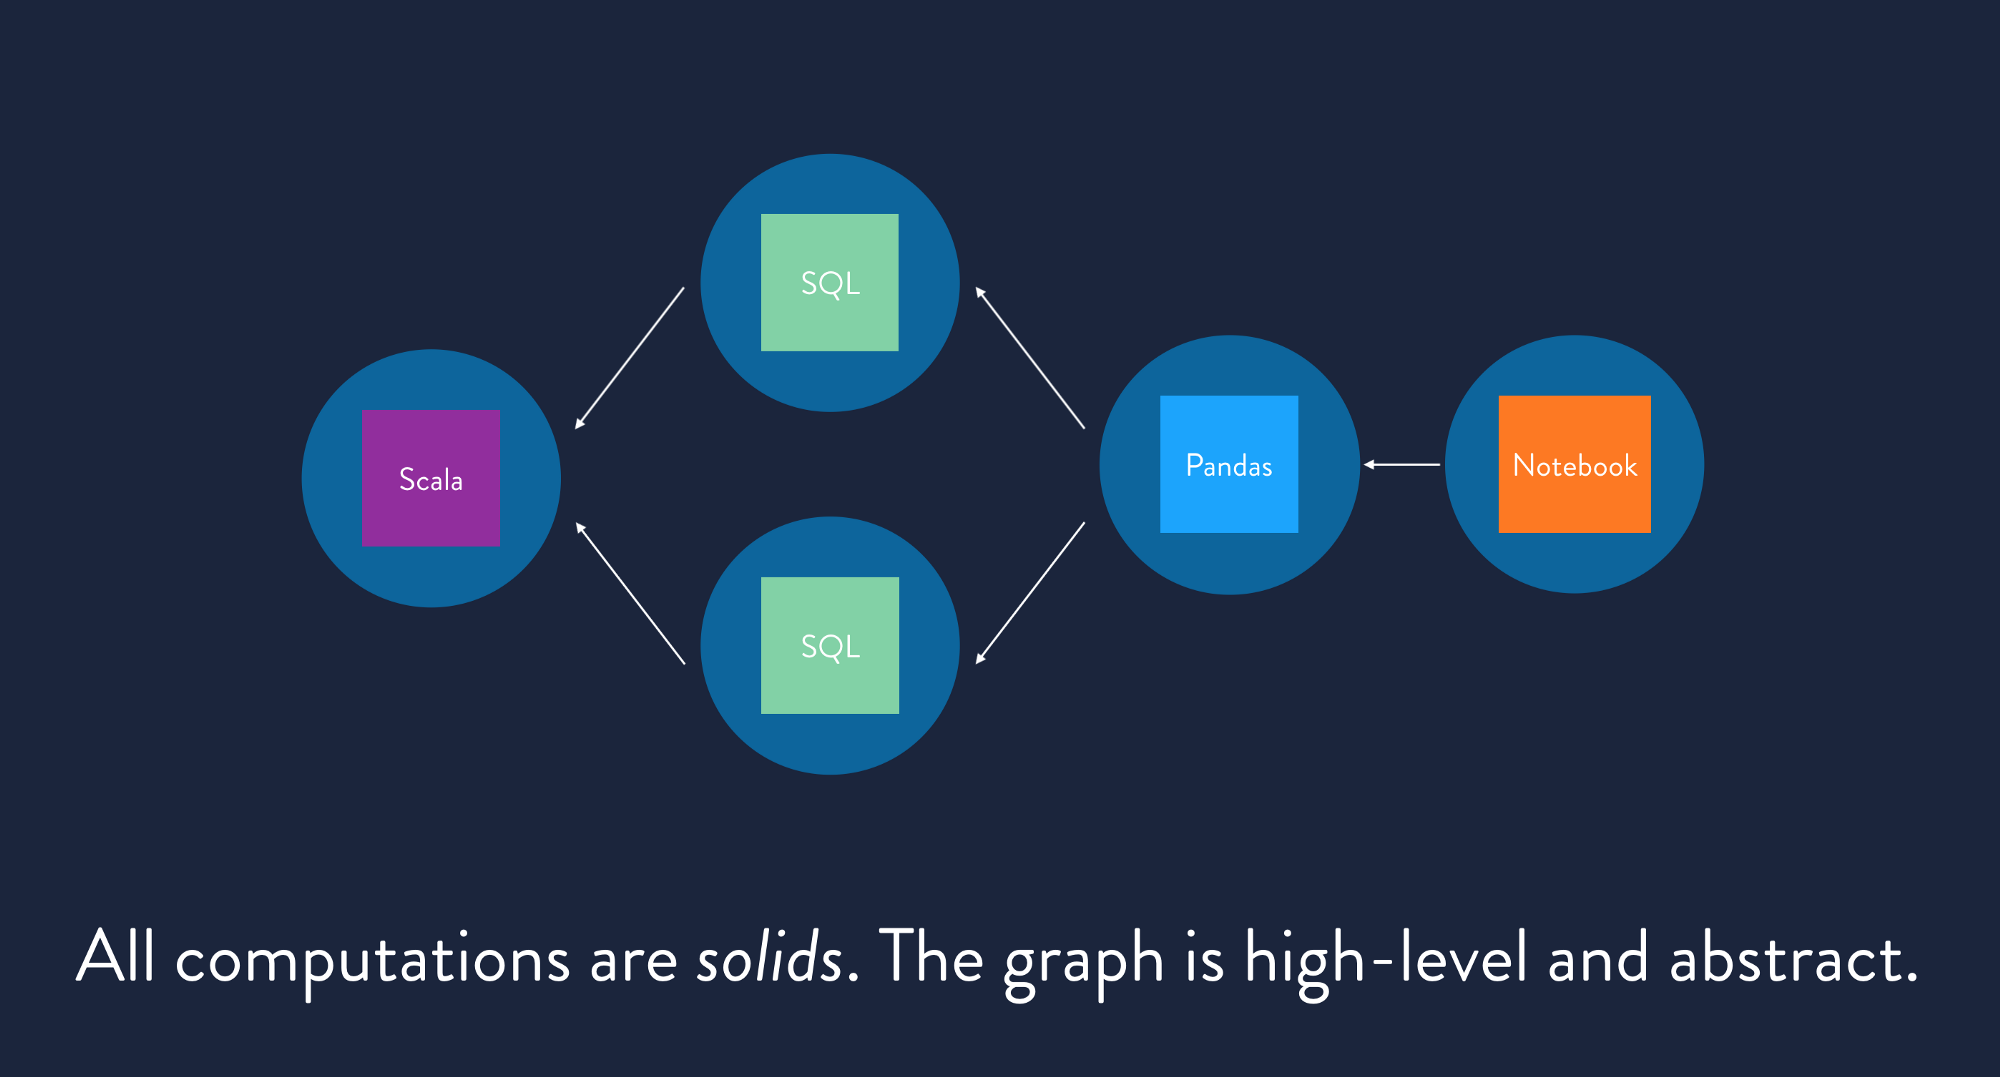 The circles in this graphic represent solids, our core abstraction for a functional computation.